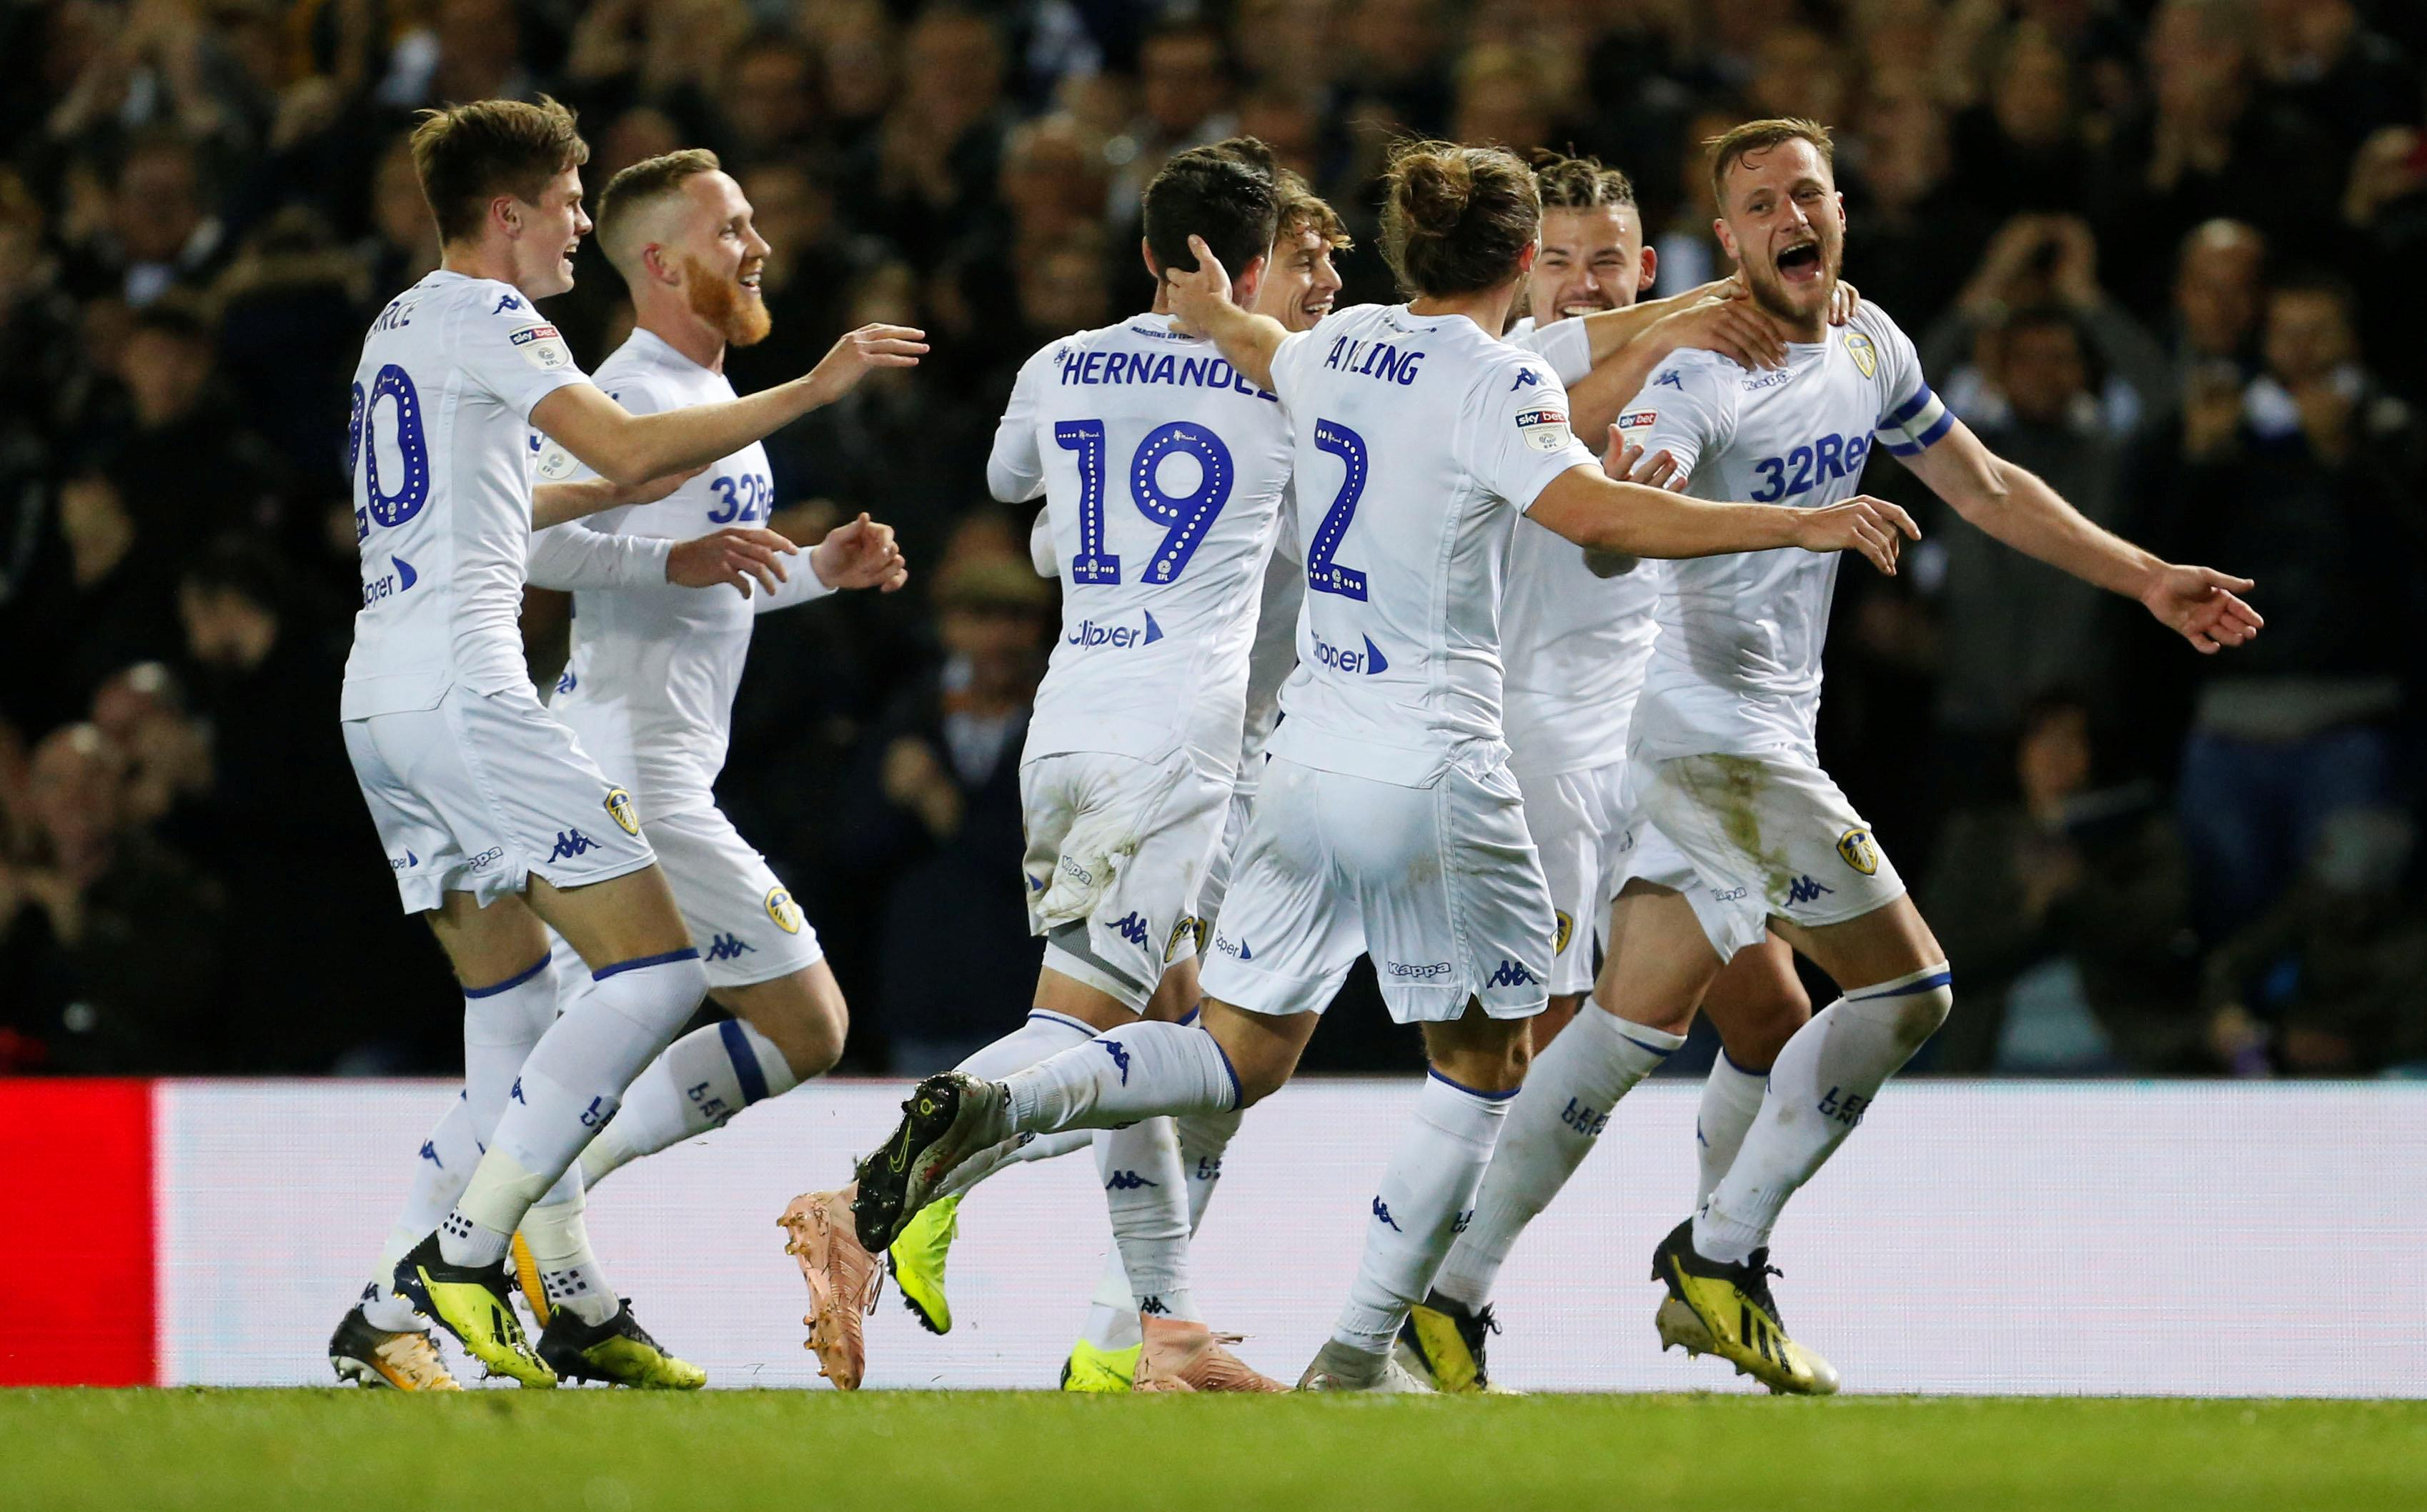 Leeds United's Liam Cooper celebrates scoring their second goal in a 2-0 win against Ipswich